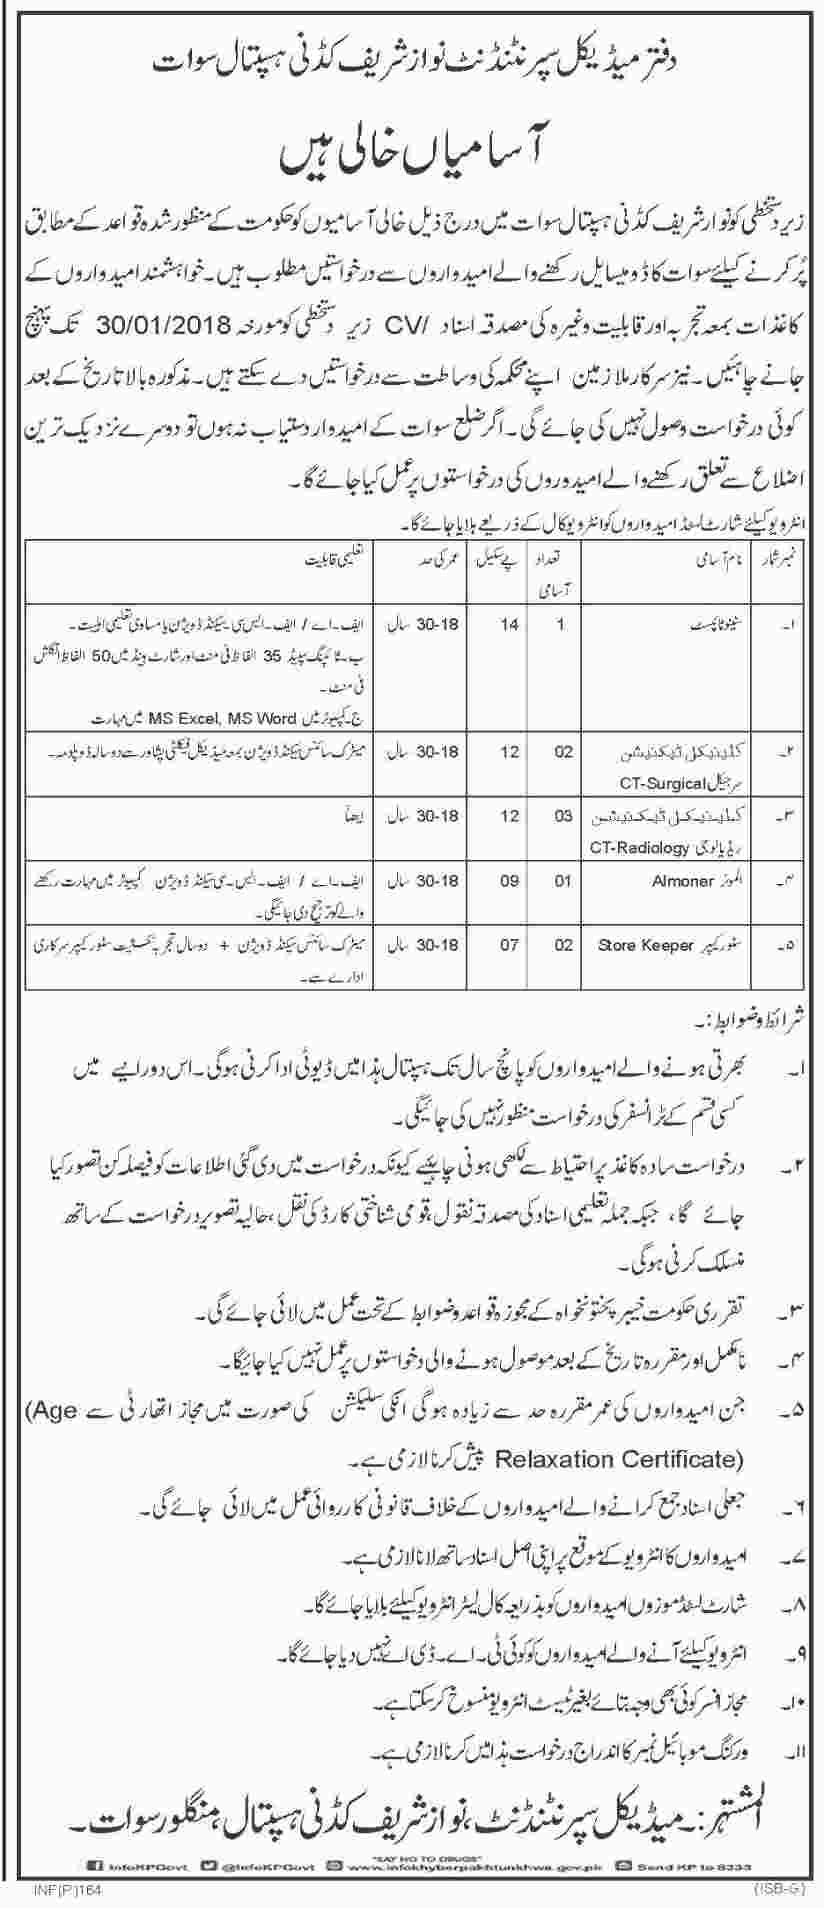 Jobs in Office Of Medical Superabundant Kidney Hospital Sawat 13 Jan 2018